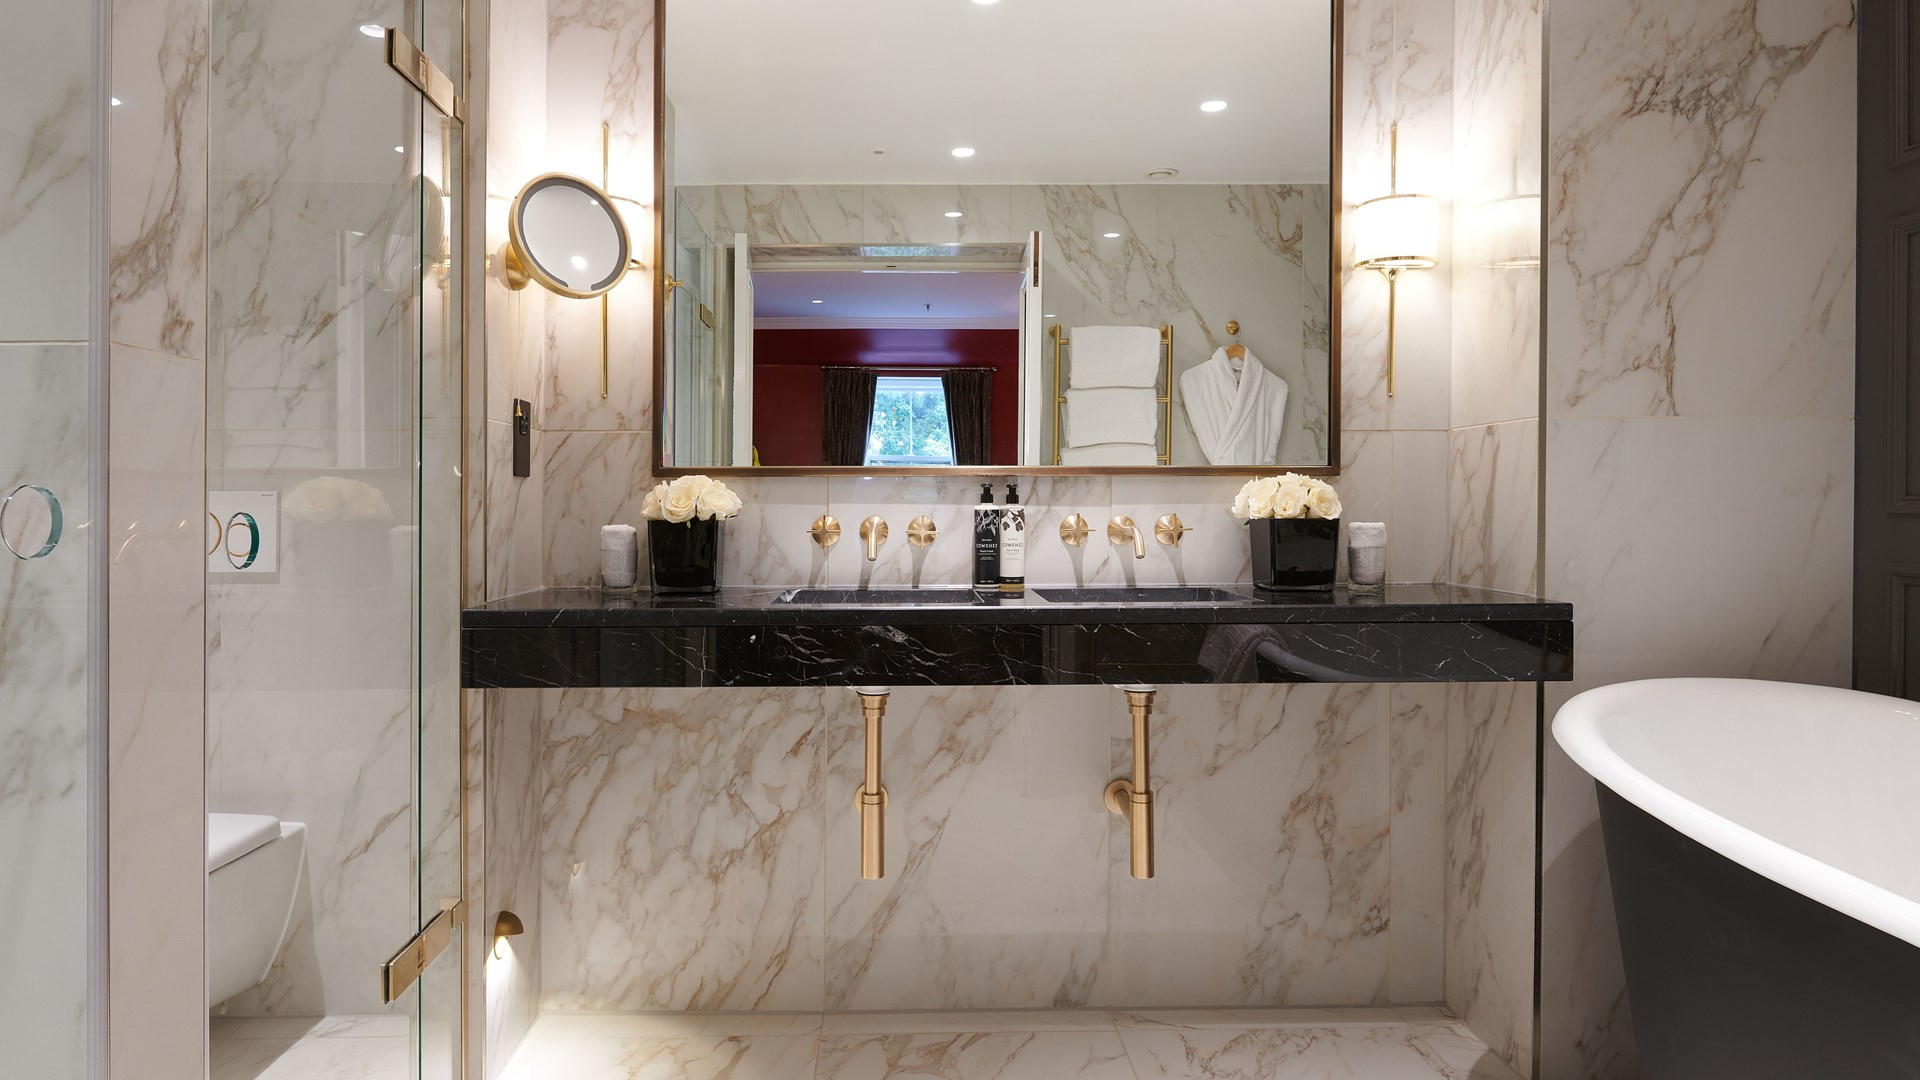 Spacious and modern marble bathroom with toiletries